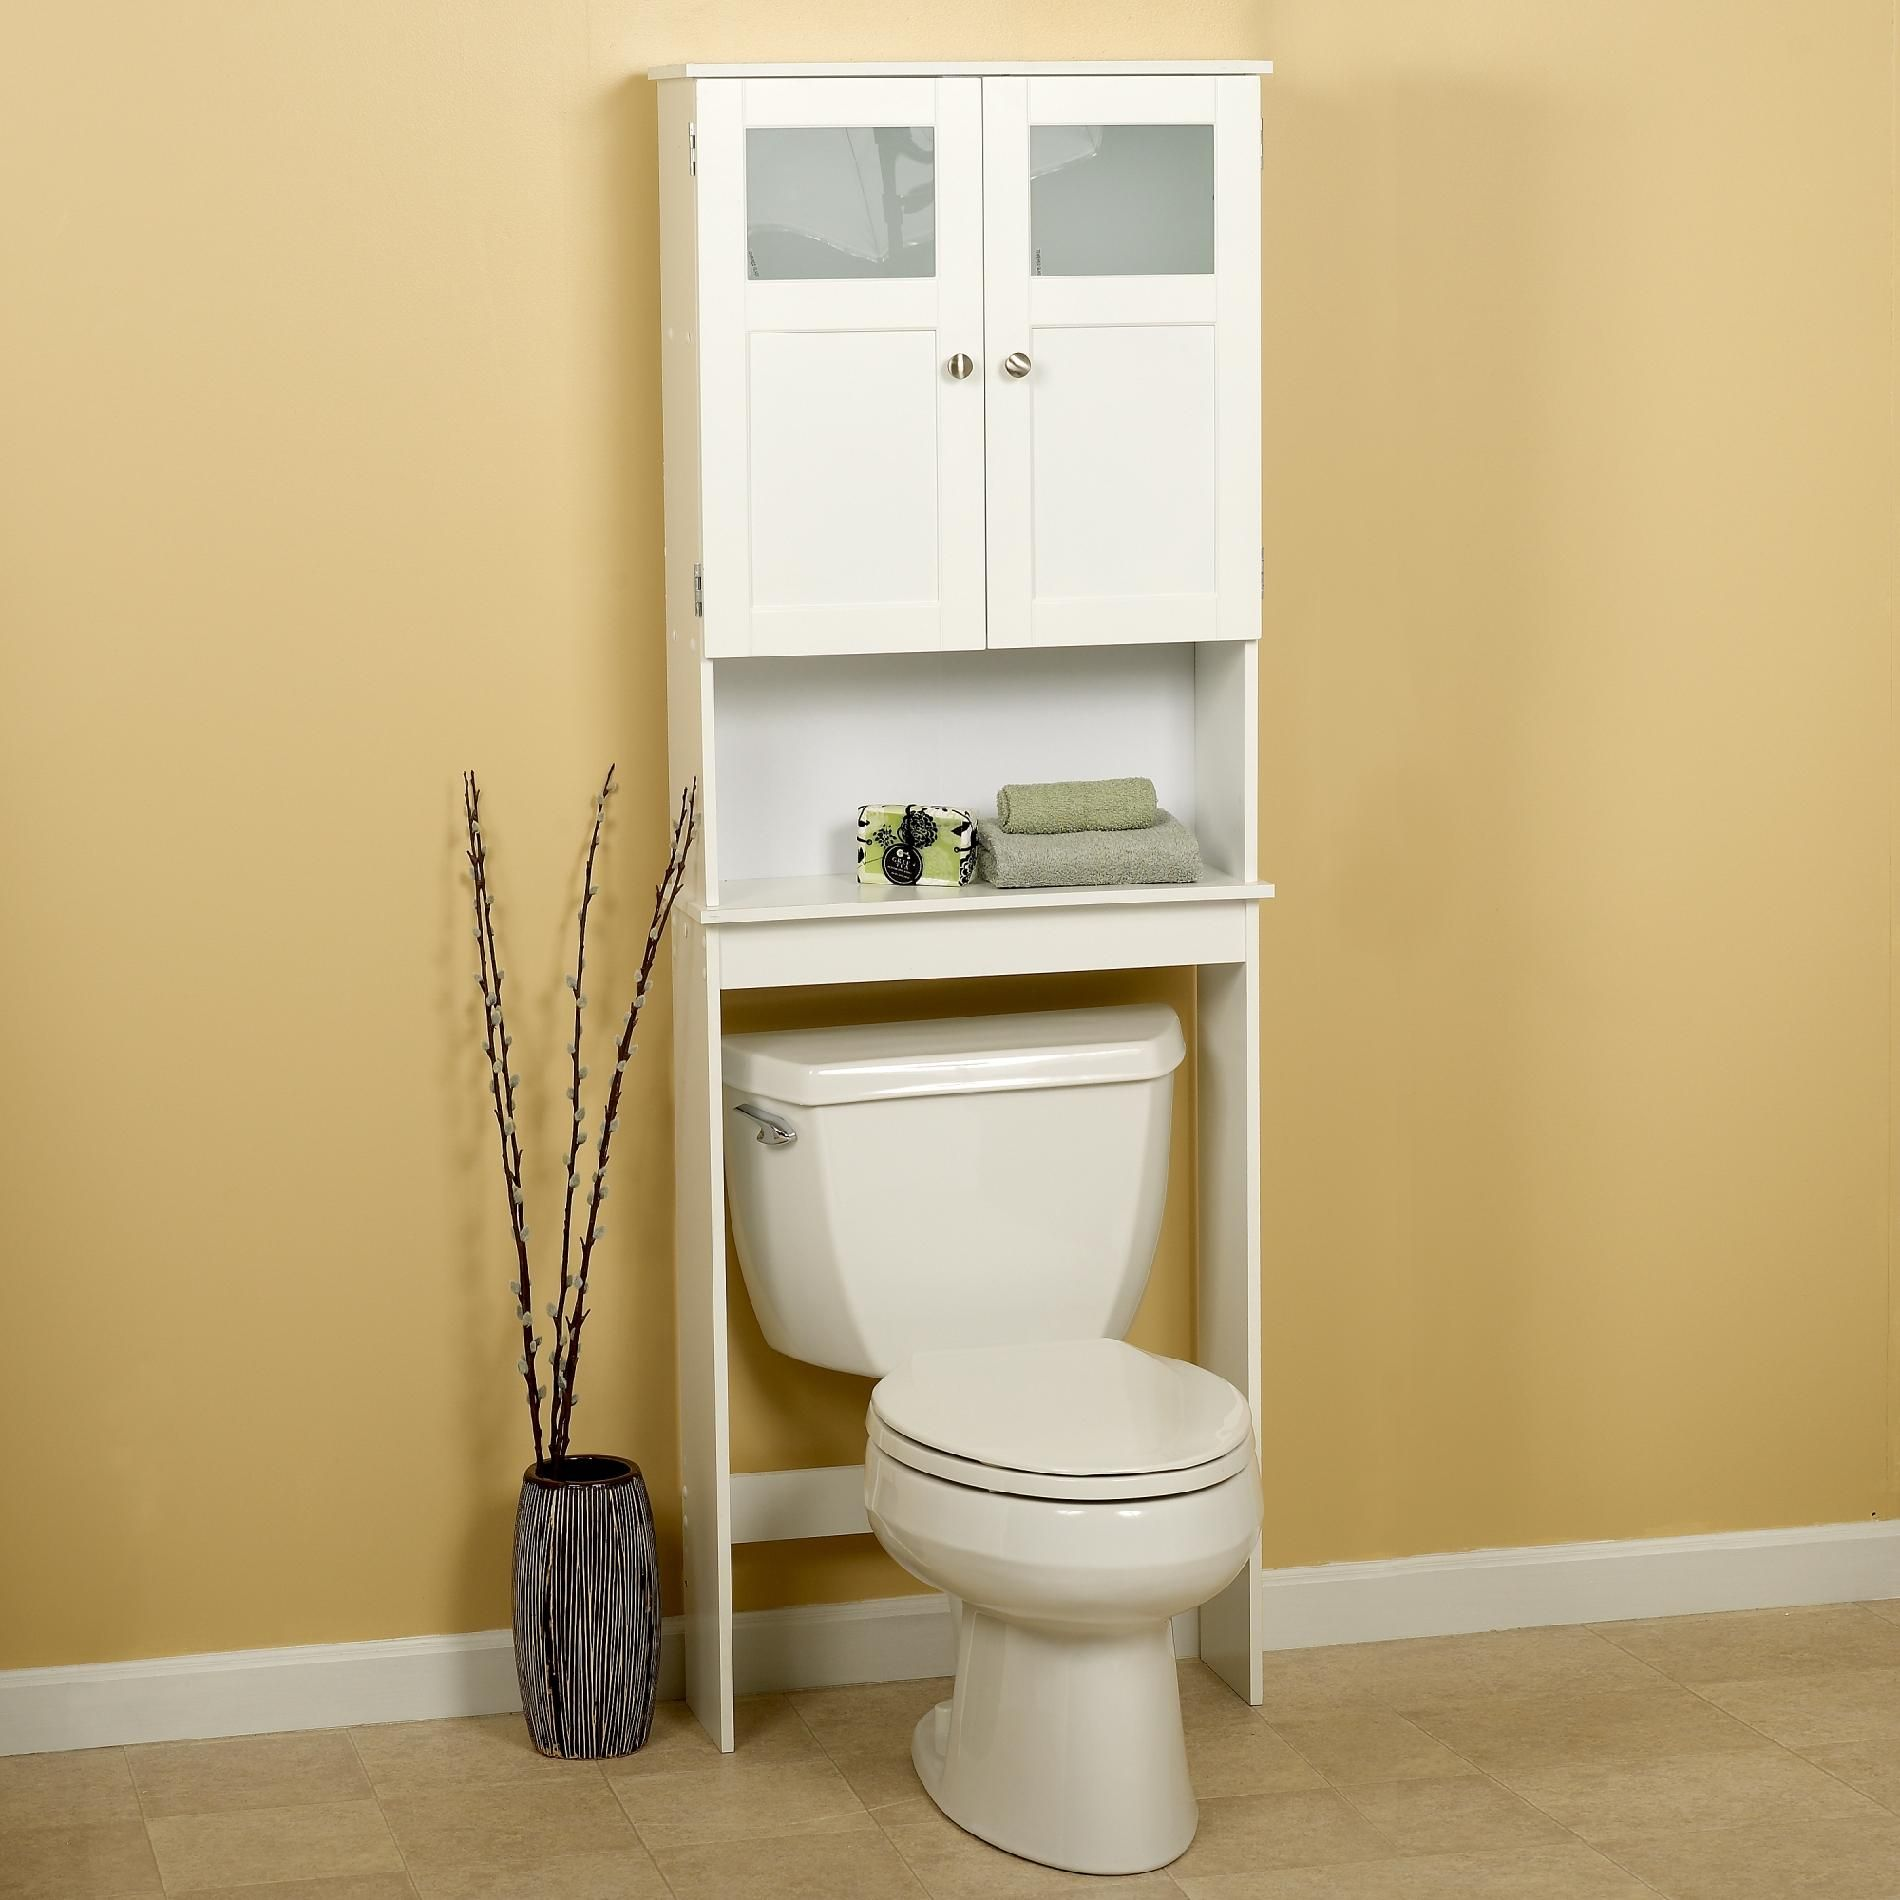 Bathroom Storage Kmart Ideas Pinterest Bathroom Storage - Toilet organizer for small bathroom ideas